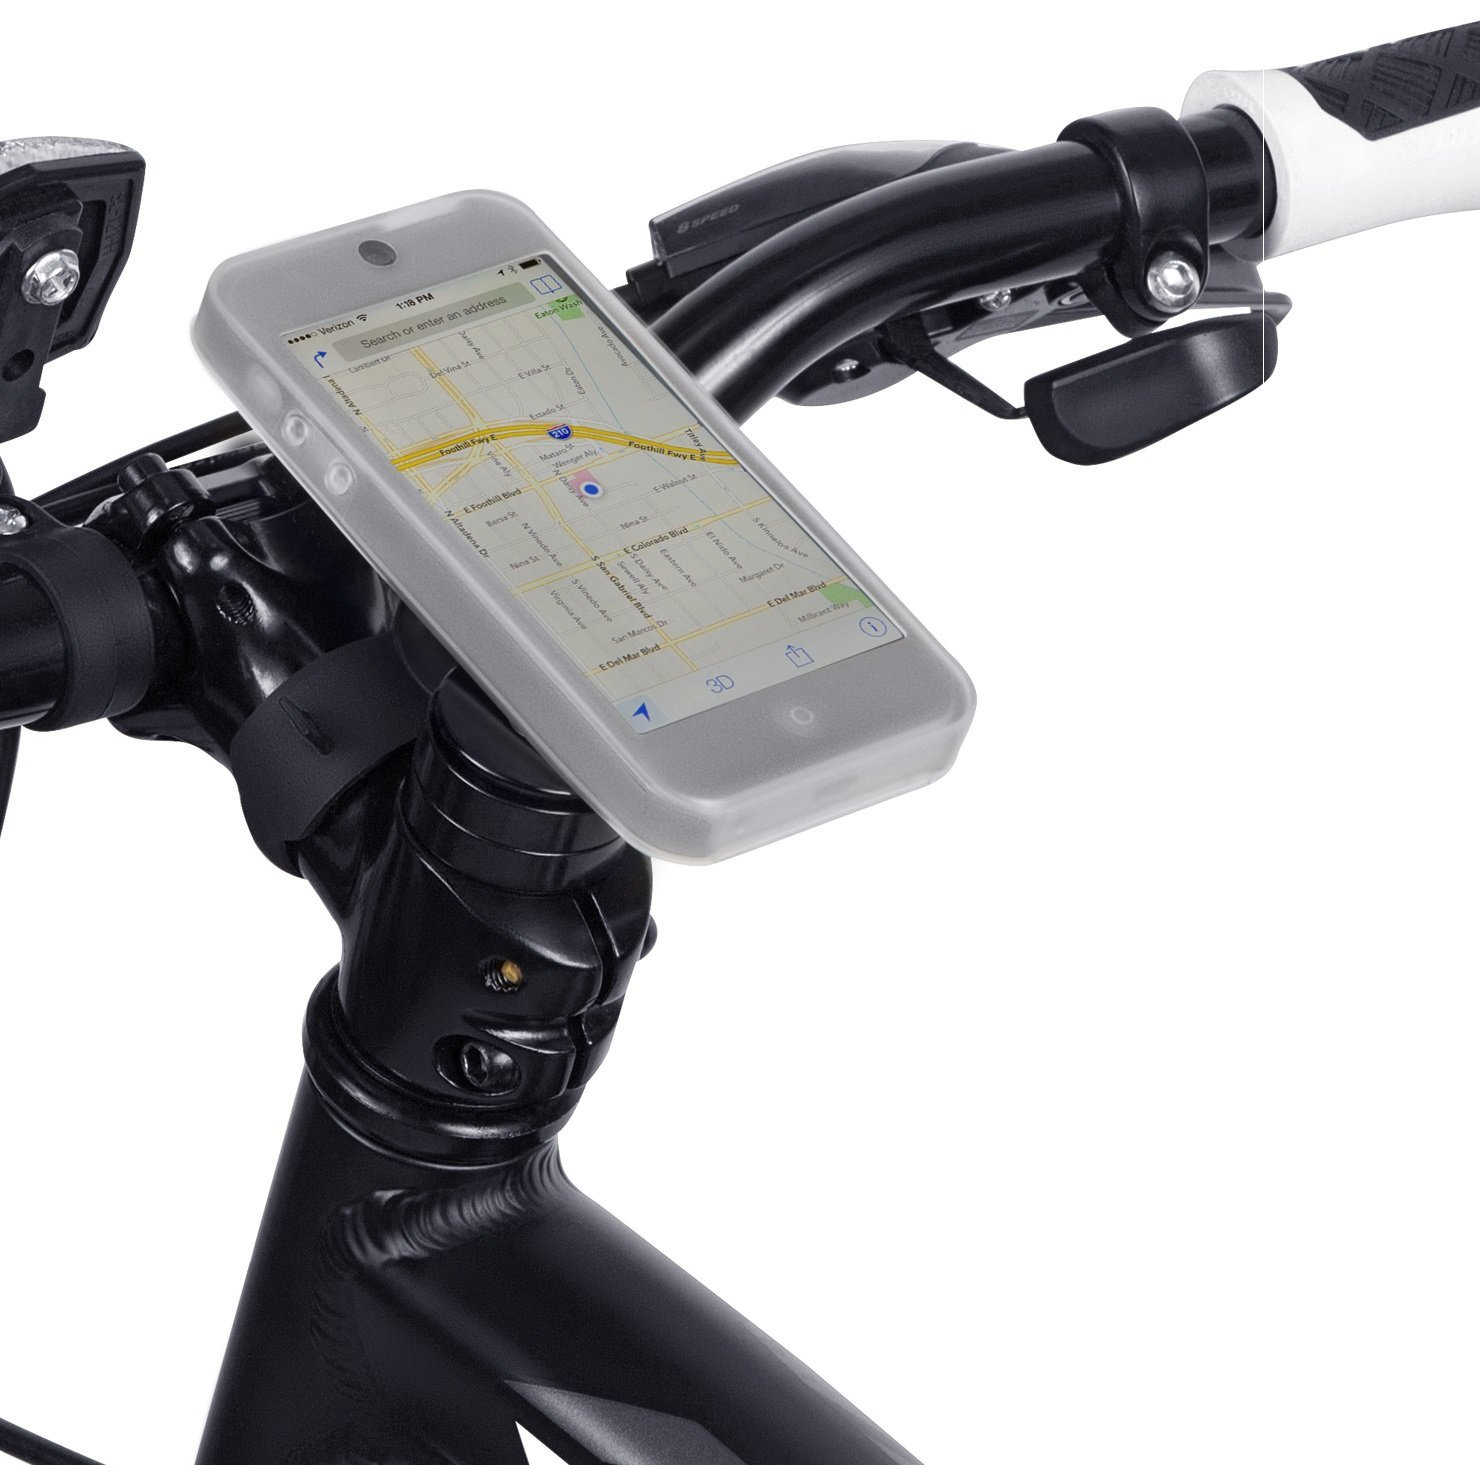 Tigra Sport Bikeconsole Lite Mount Case Bike Kit For